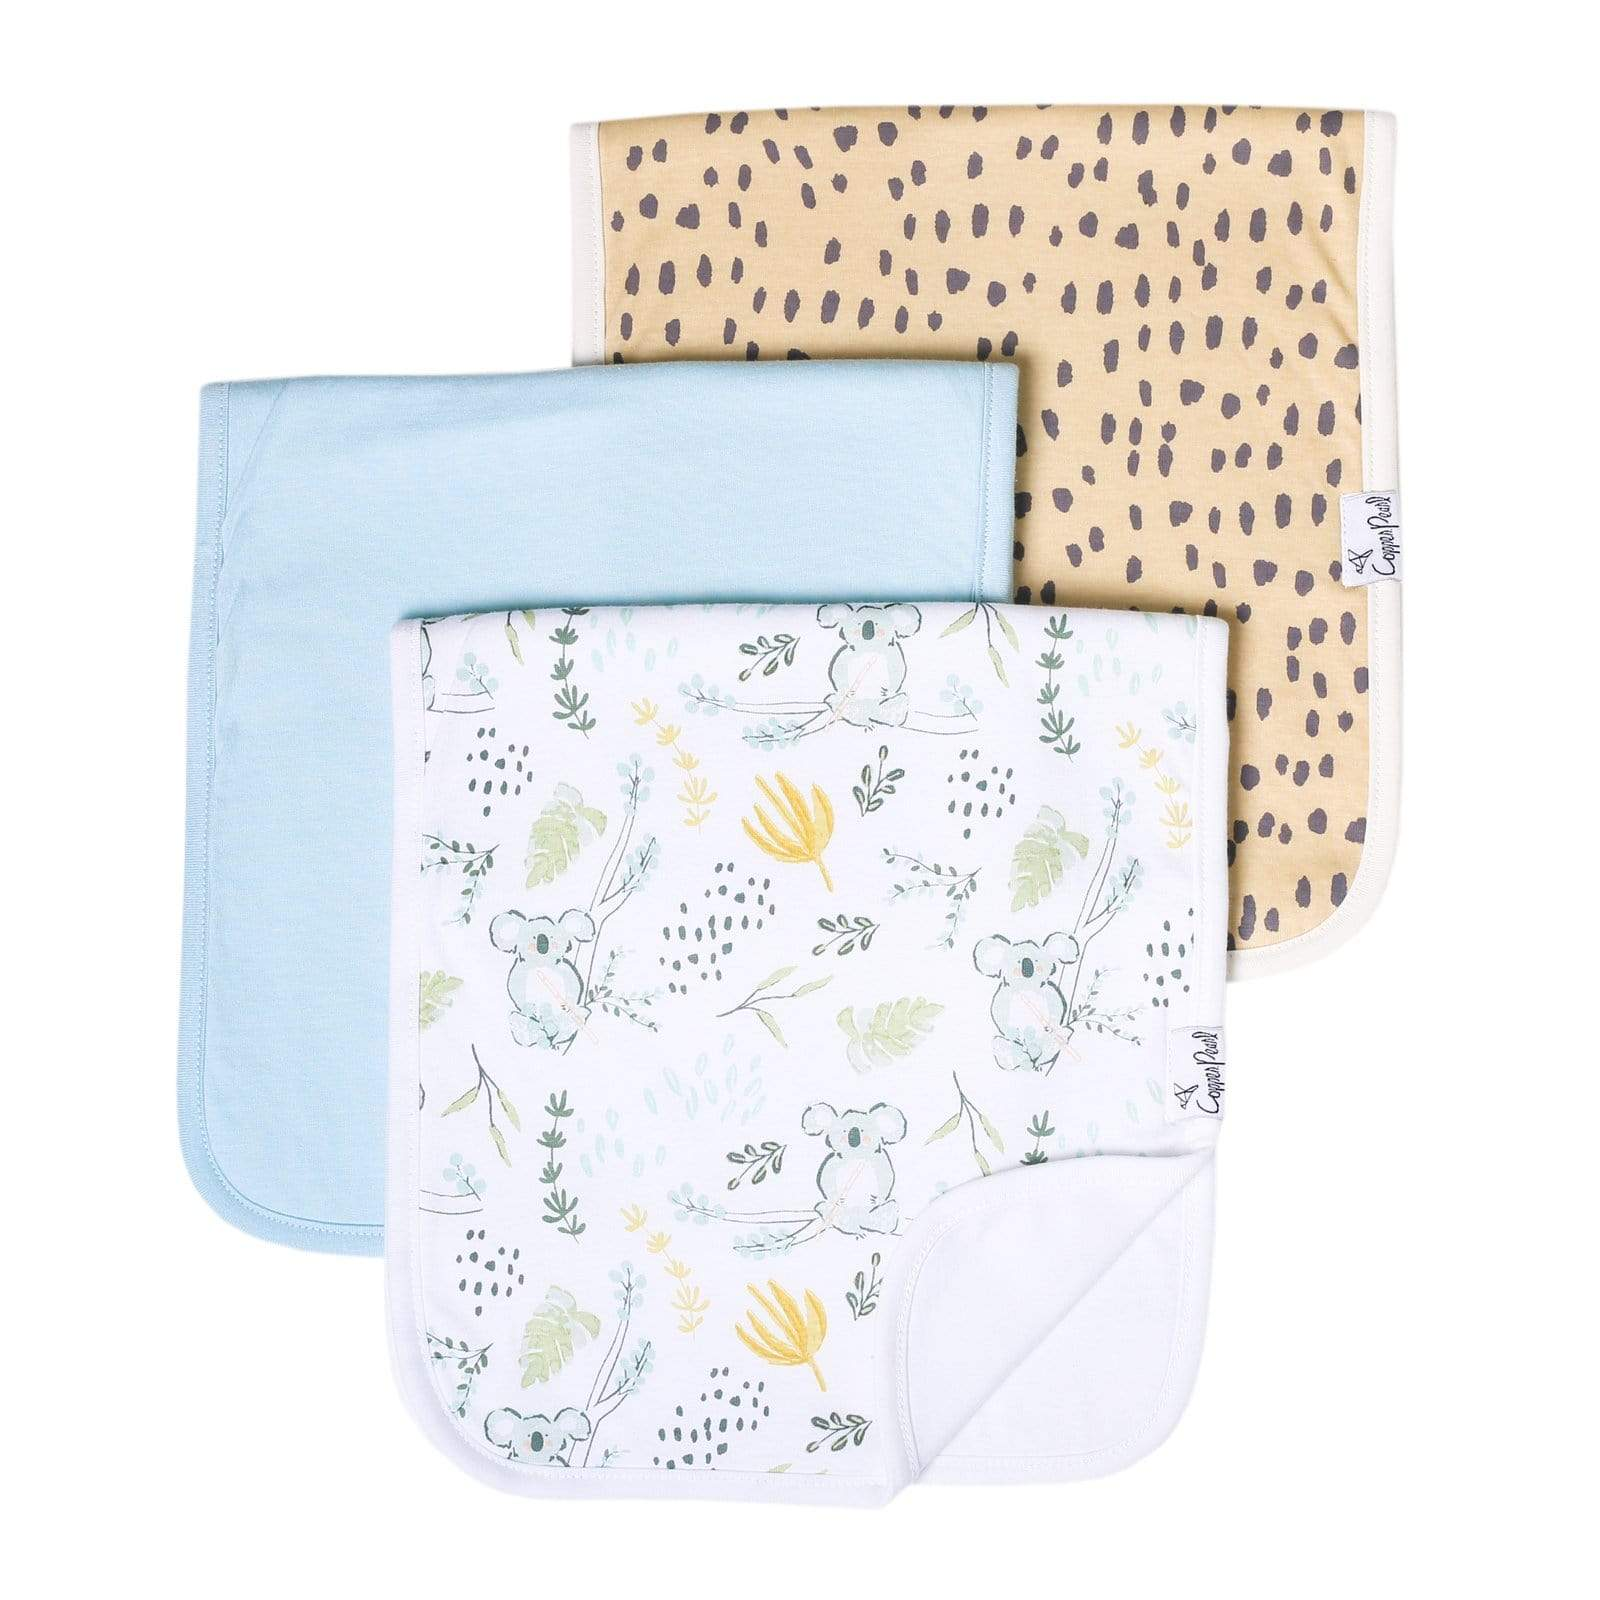 Copper Pearl Burp Cloth Set - 3 pack - Aussie